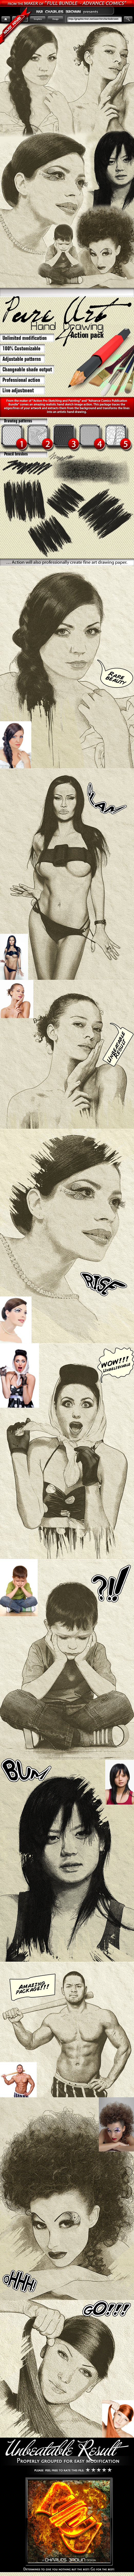 Pure Art Hand Drawing 4 - Fine Art - Photo Effects Actions